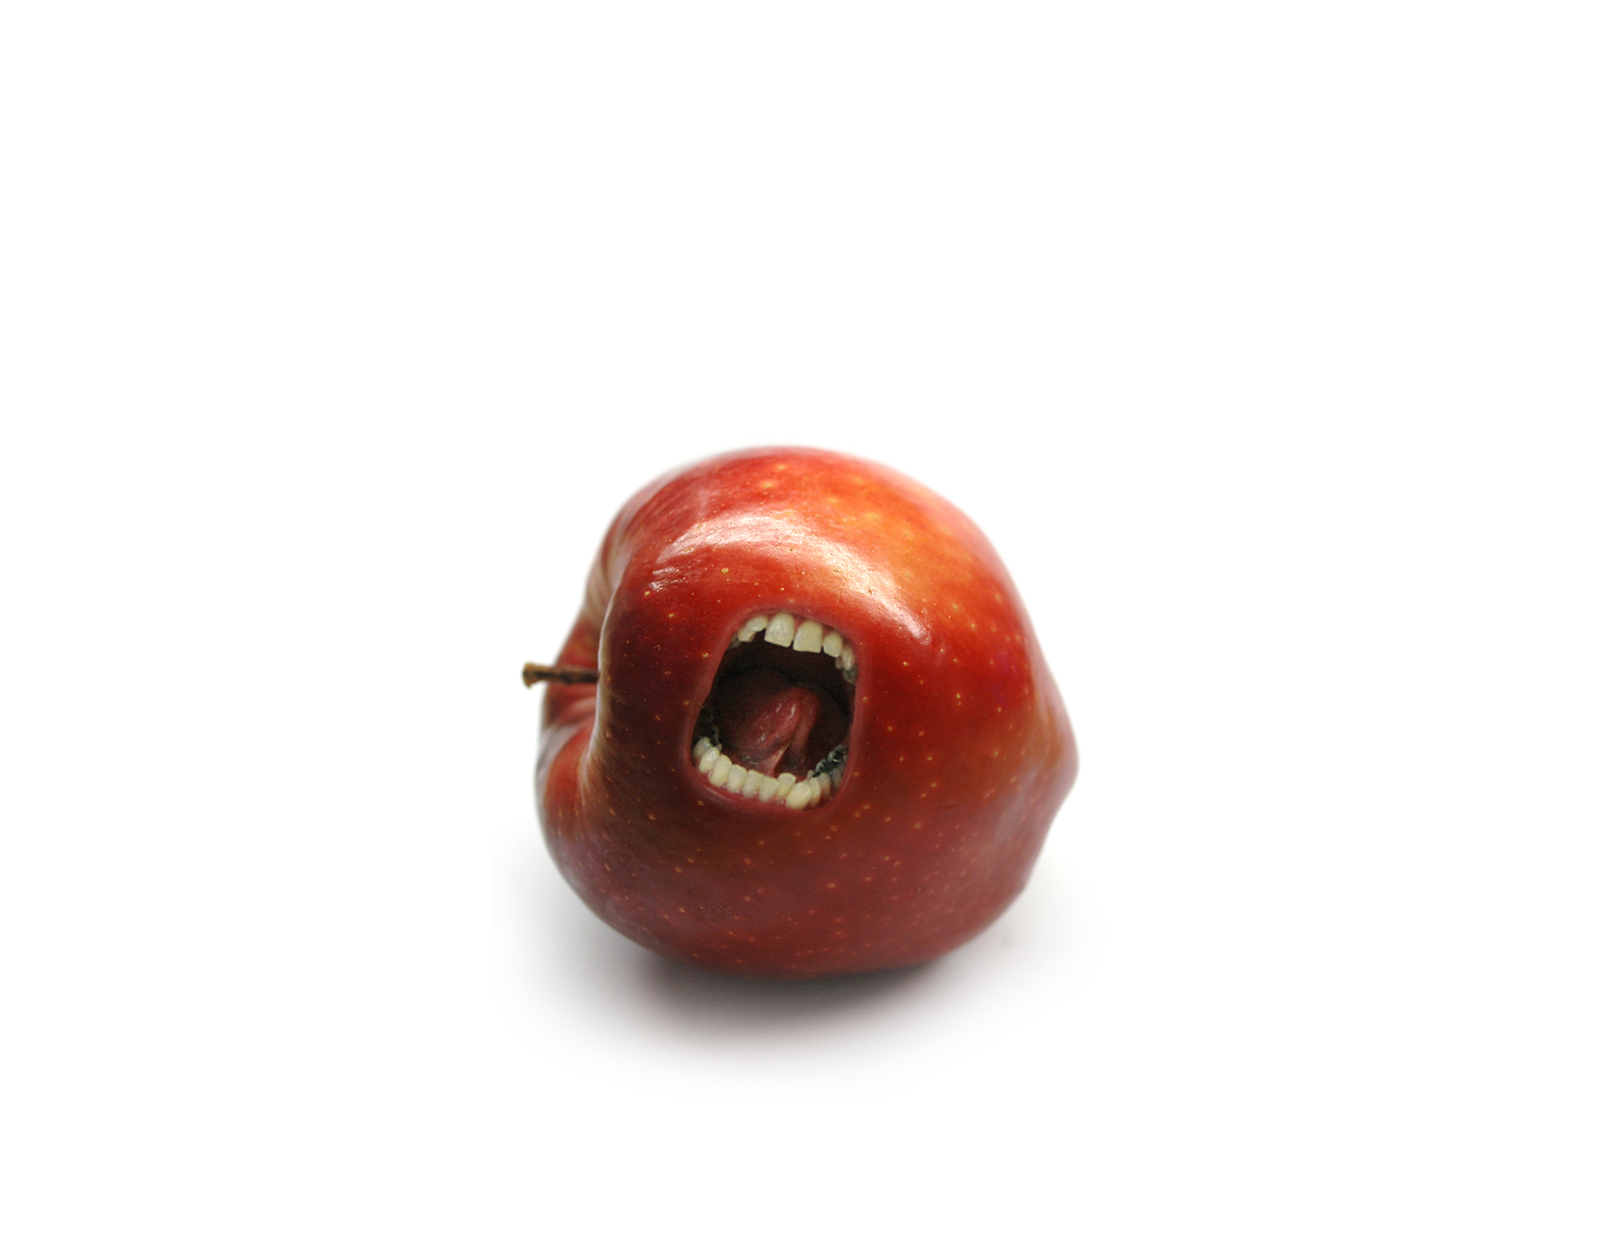 angry apple image